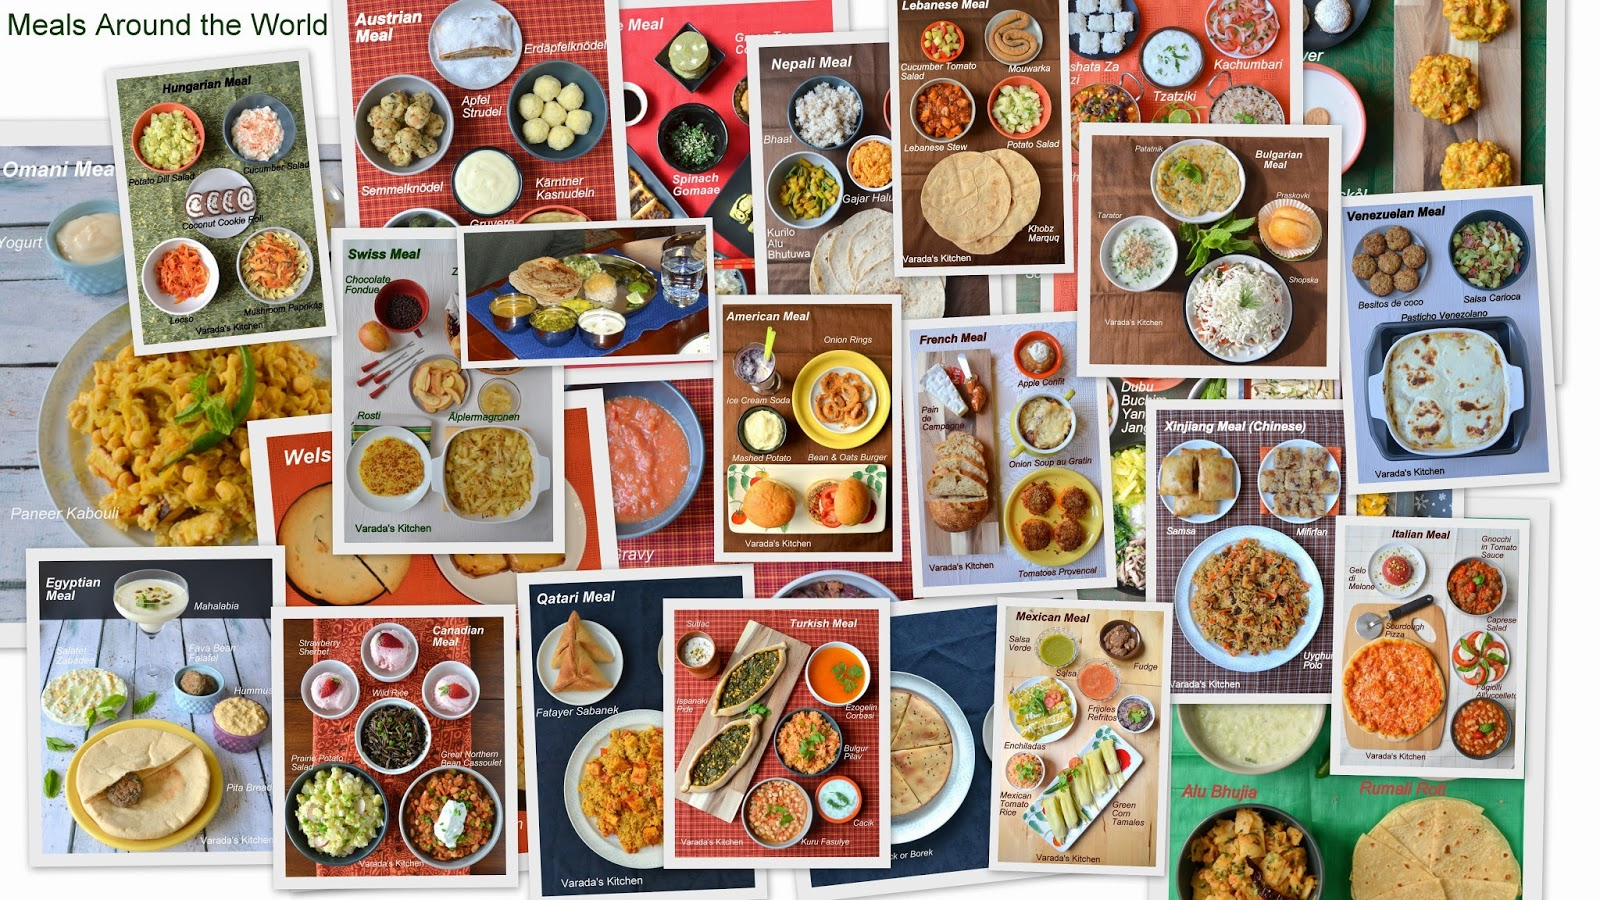 Varada 39 s kitchen meals around the world for Around the world cuisine